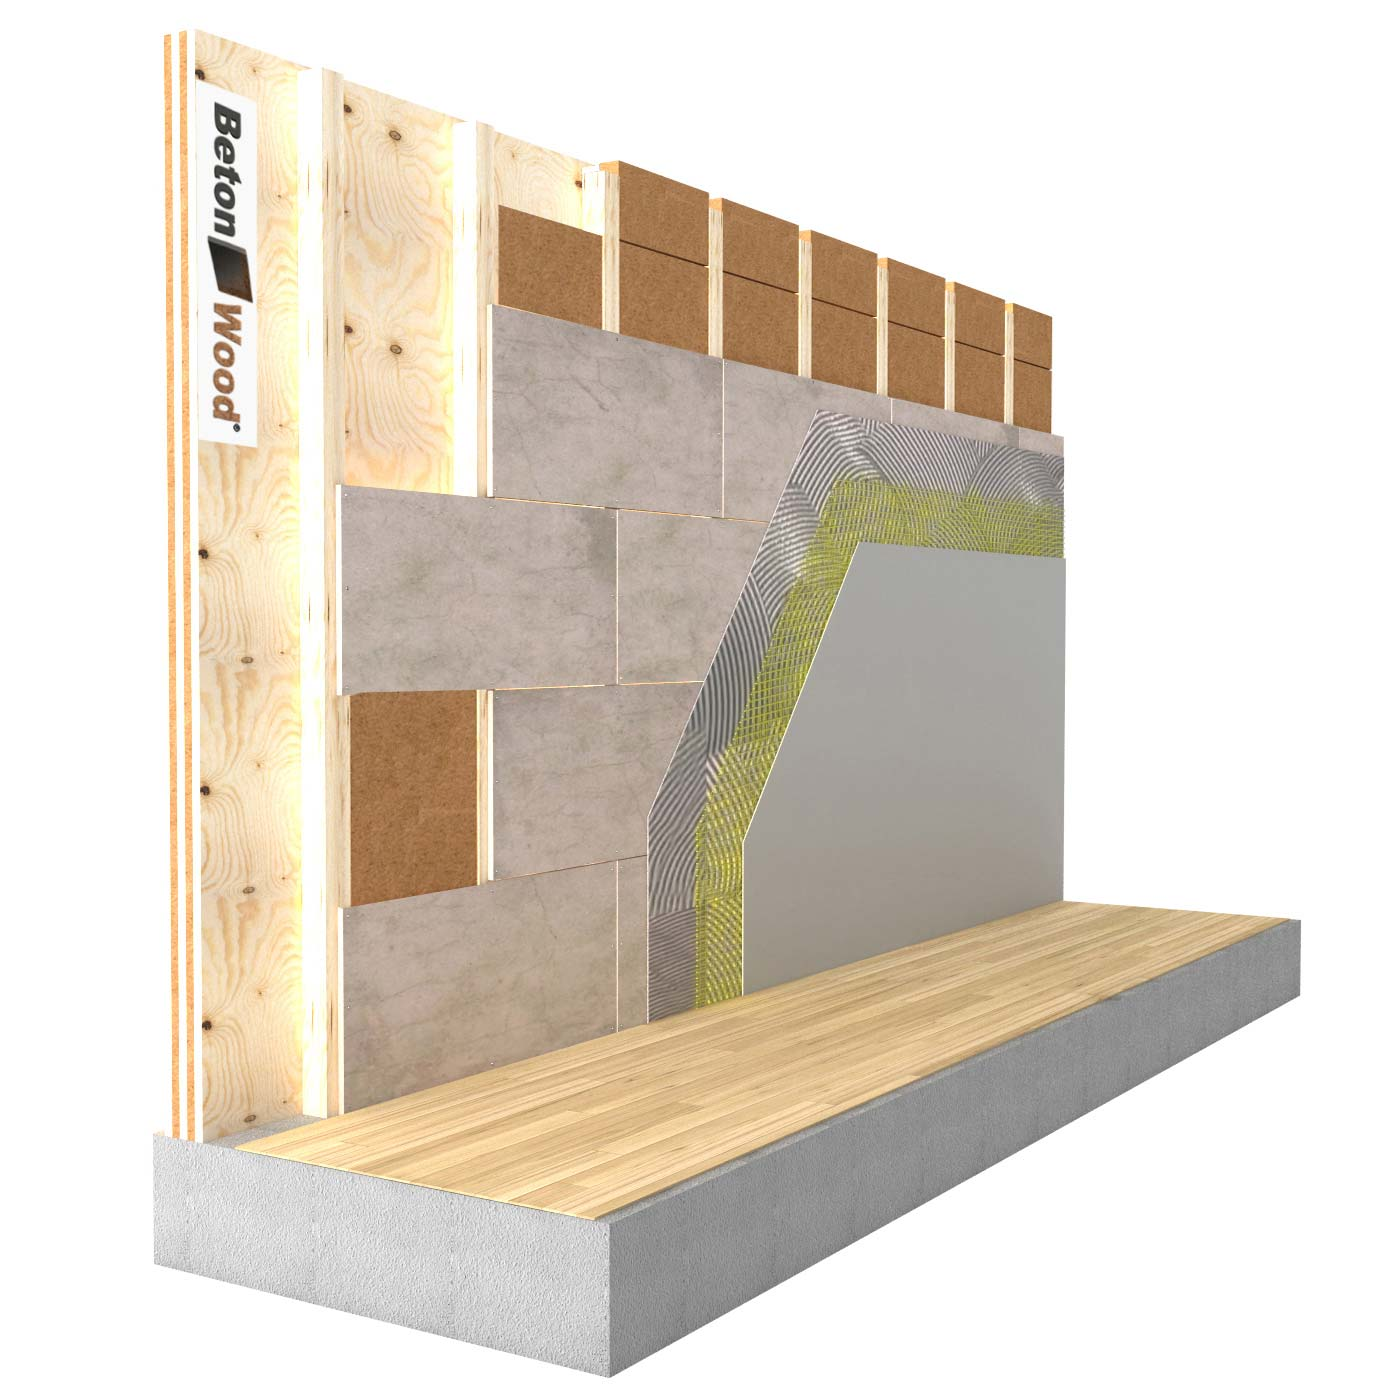 Internal insulation system in Fiber Wood and cement bonded particle board